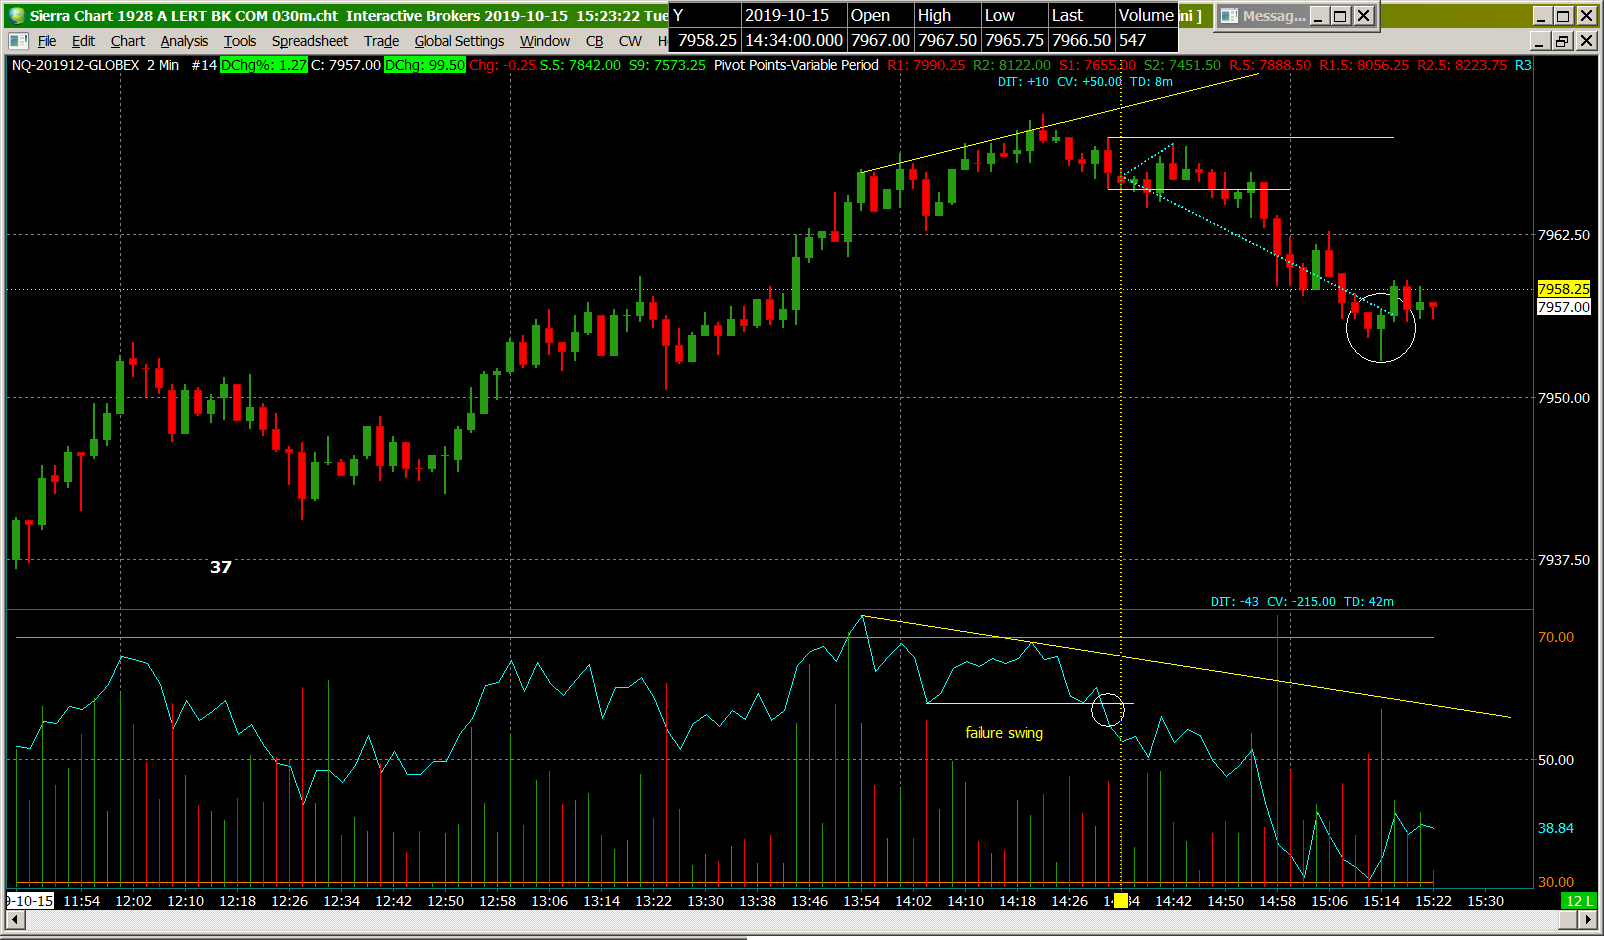 failure swing 7989 nq 2m.png